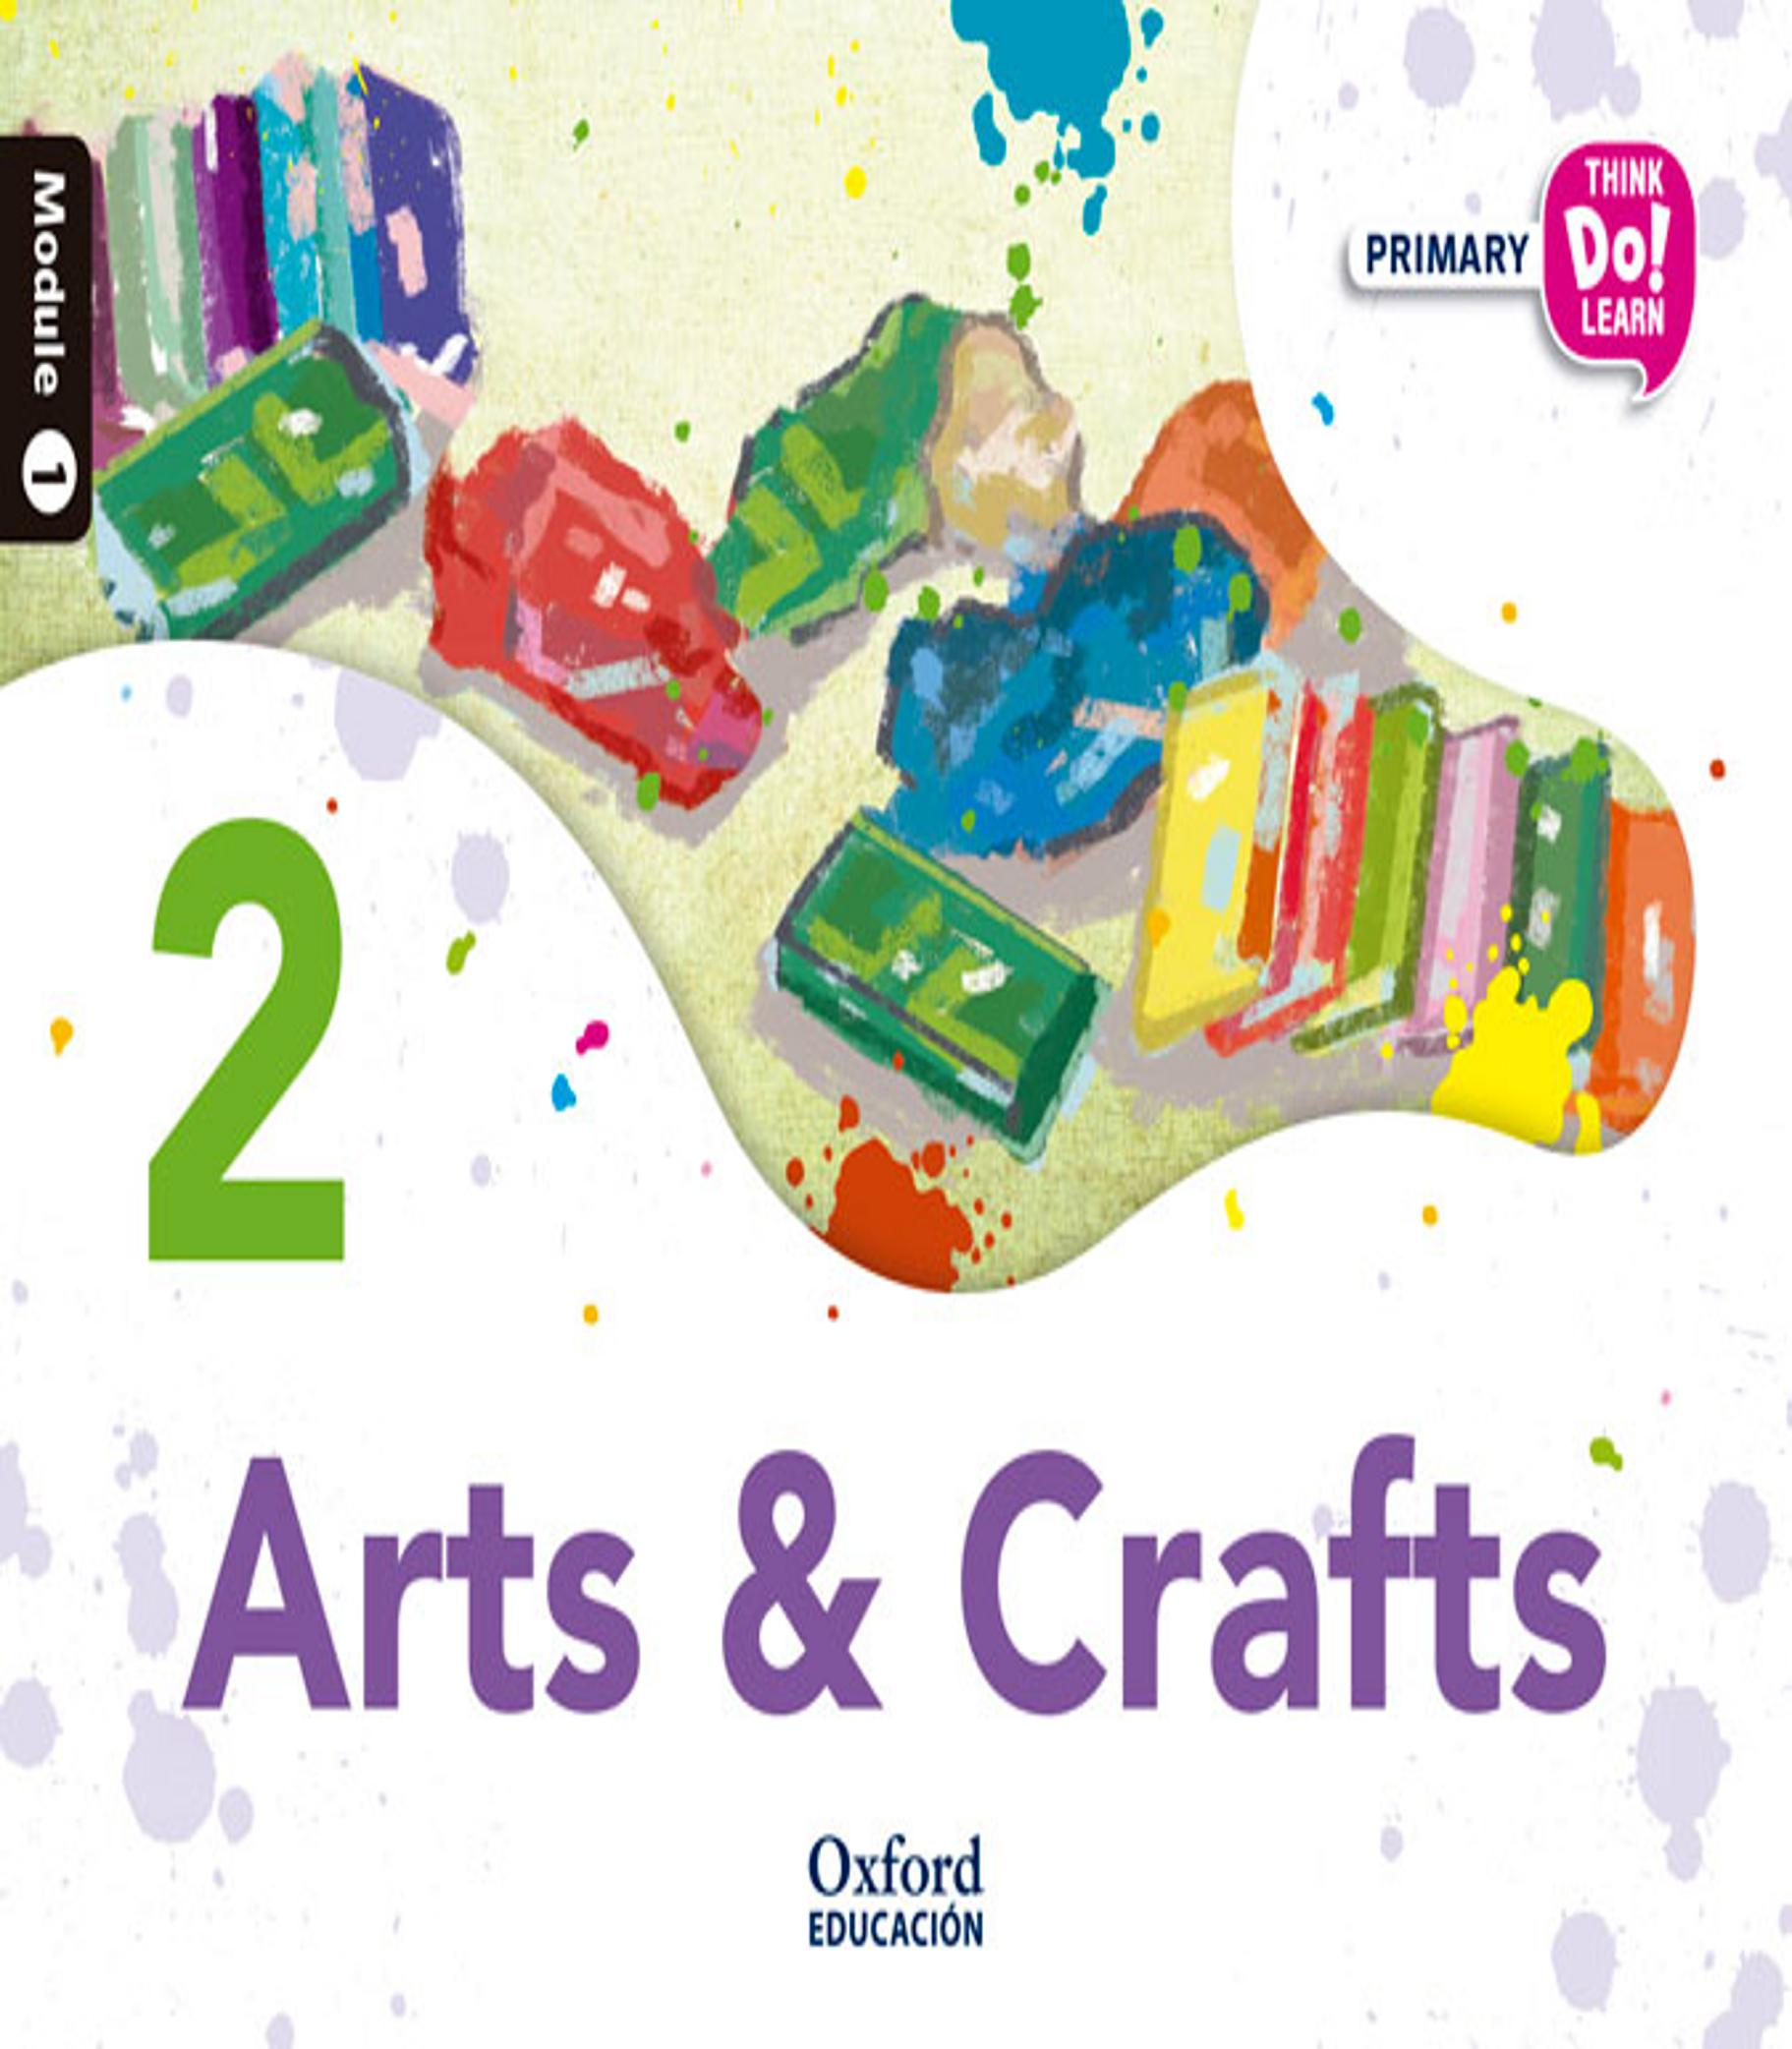 ARTS AND CRAFTS 2.1 Think Do Learn